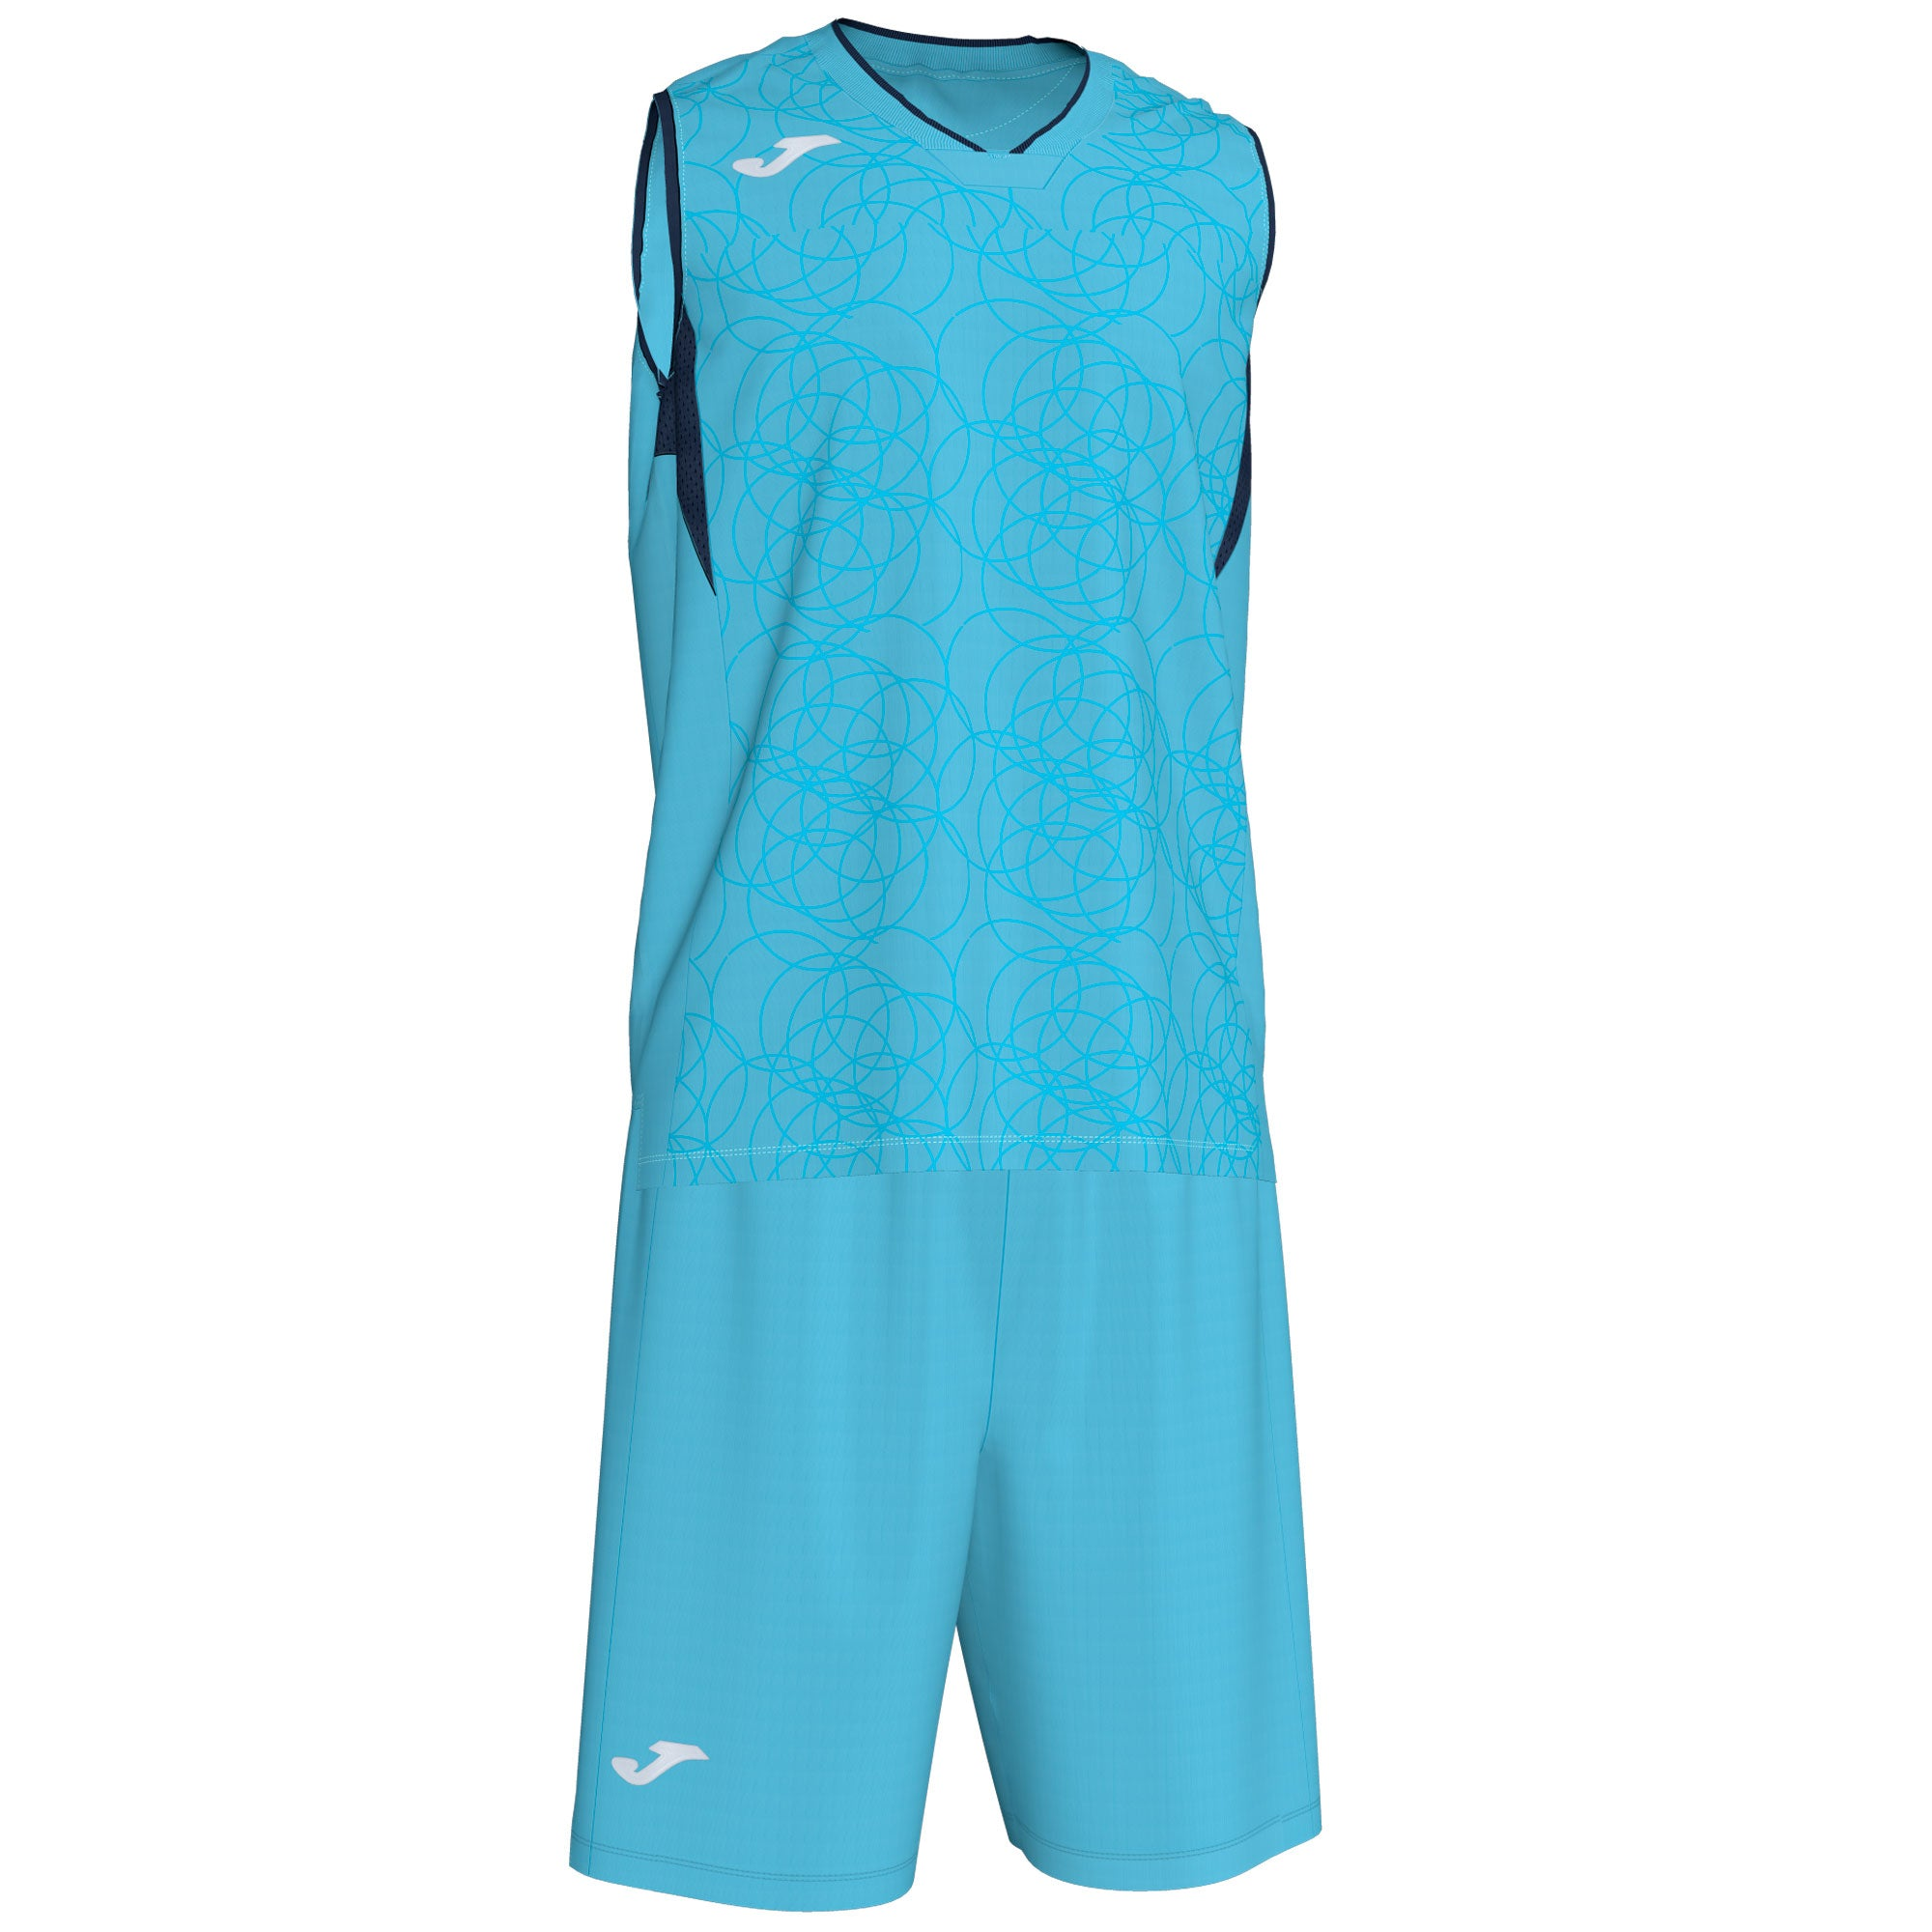 Teamwear - Joma Campus Kit - Turquoise Flour/Dark Navy - JO-101373-013